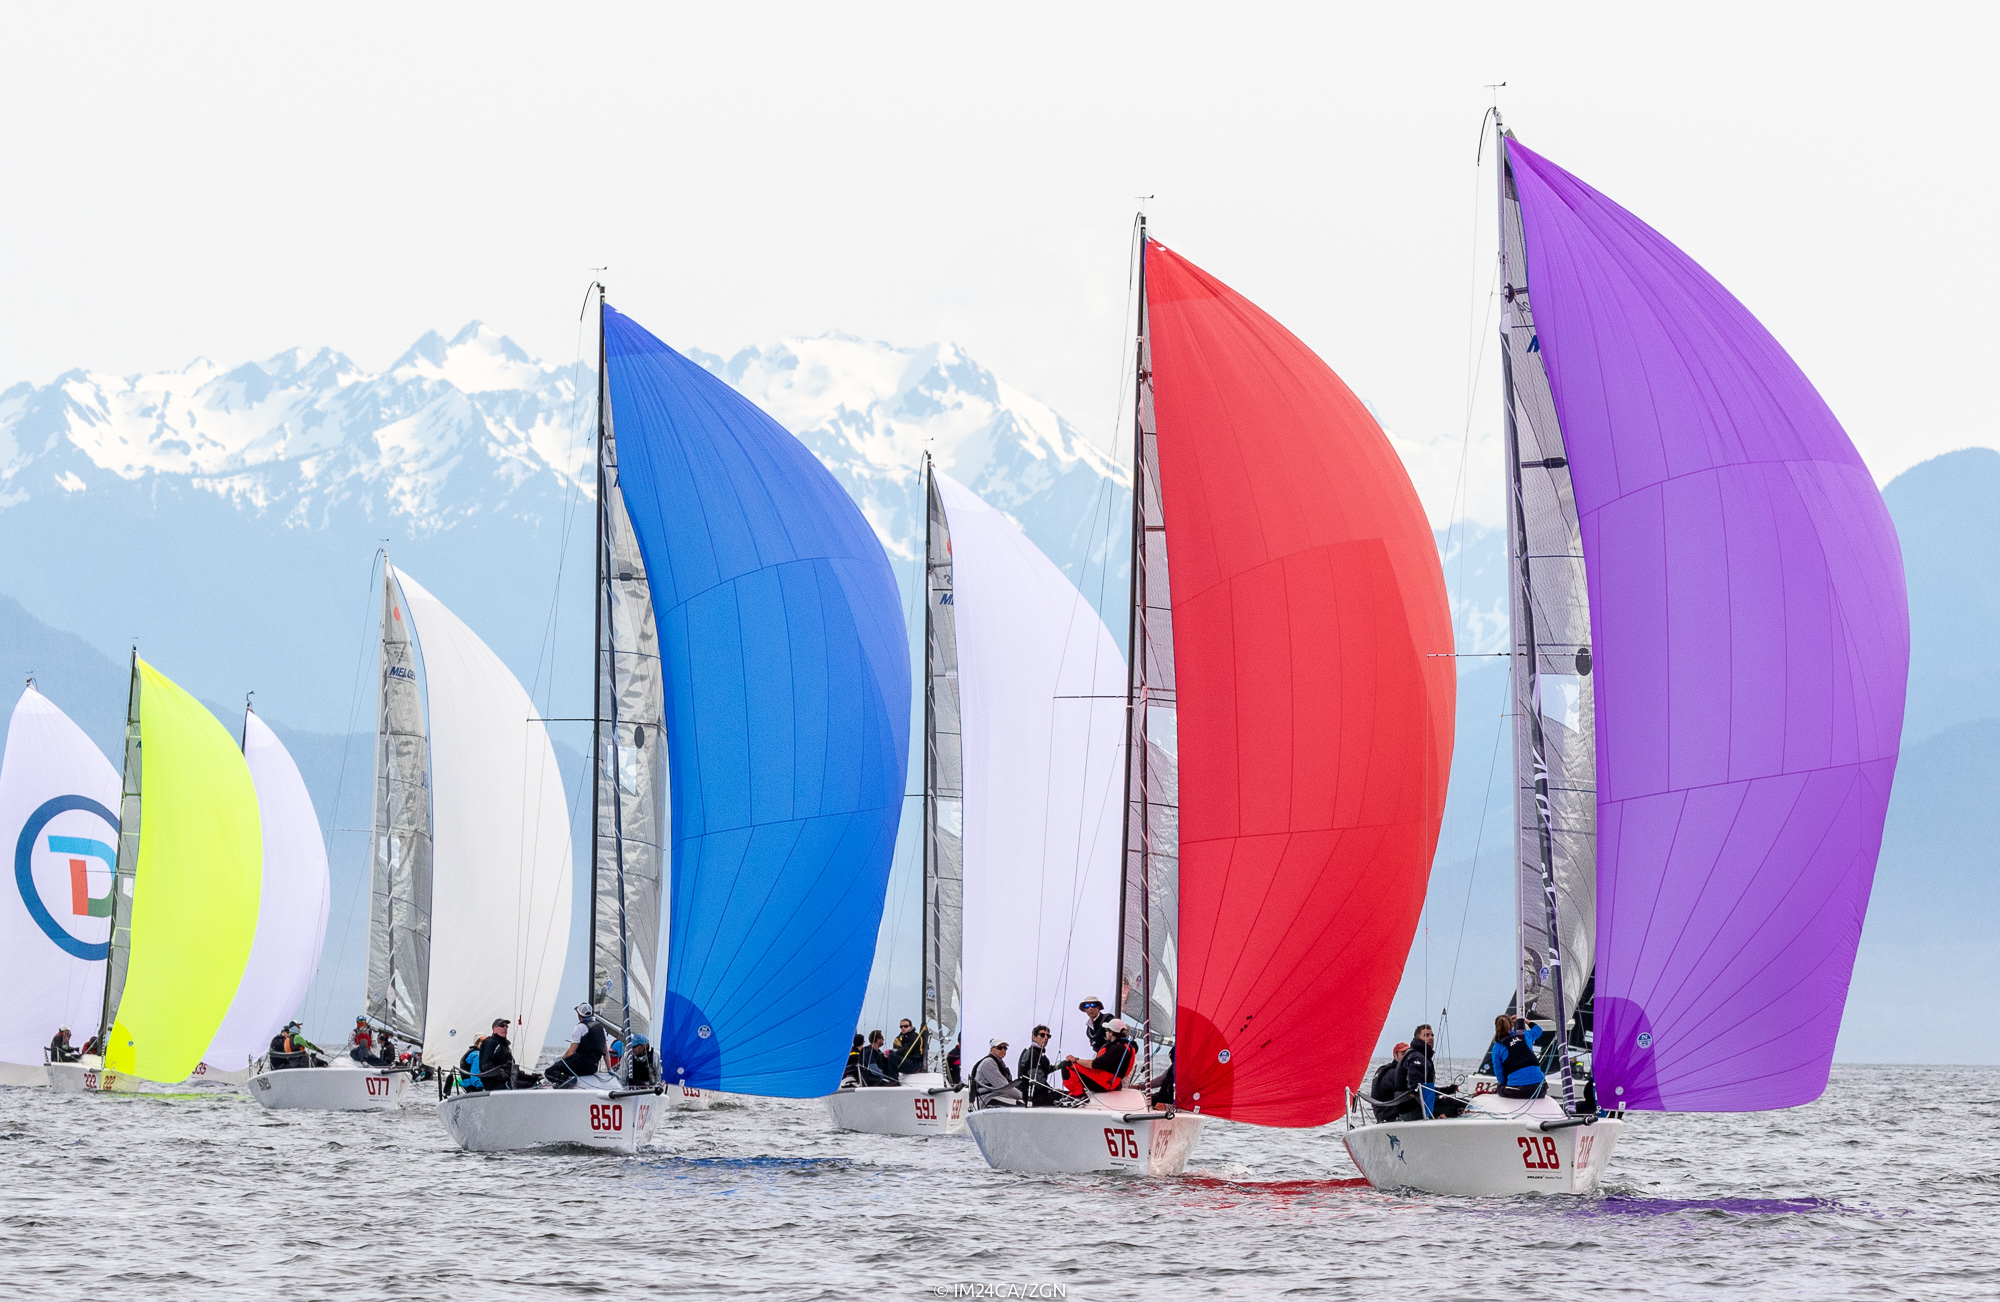 Melges 24 Worlds 2018 - Photo IM24CA/ZGN